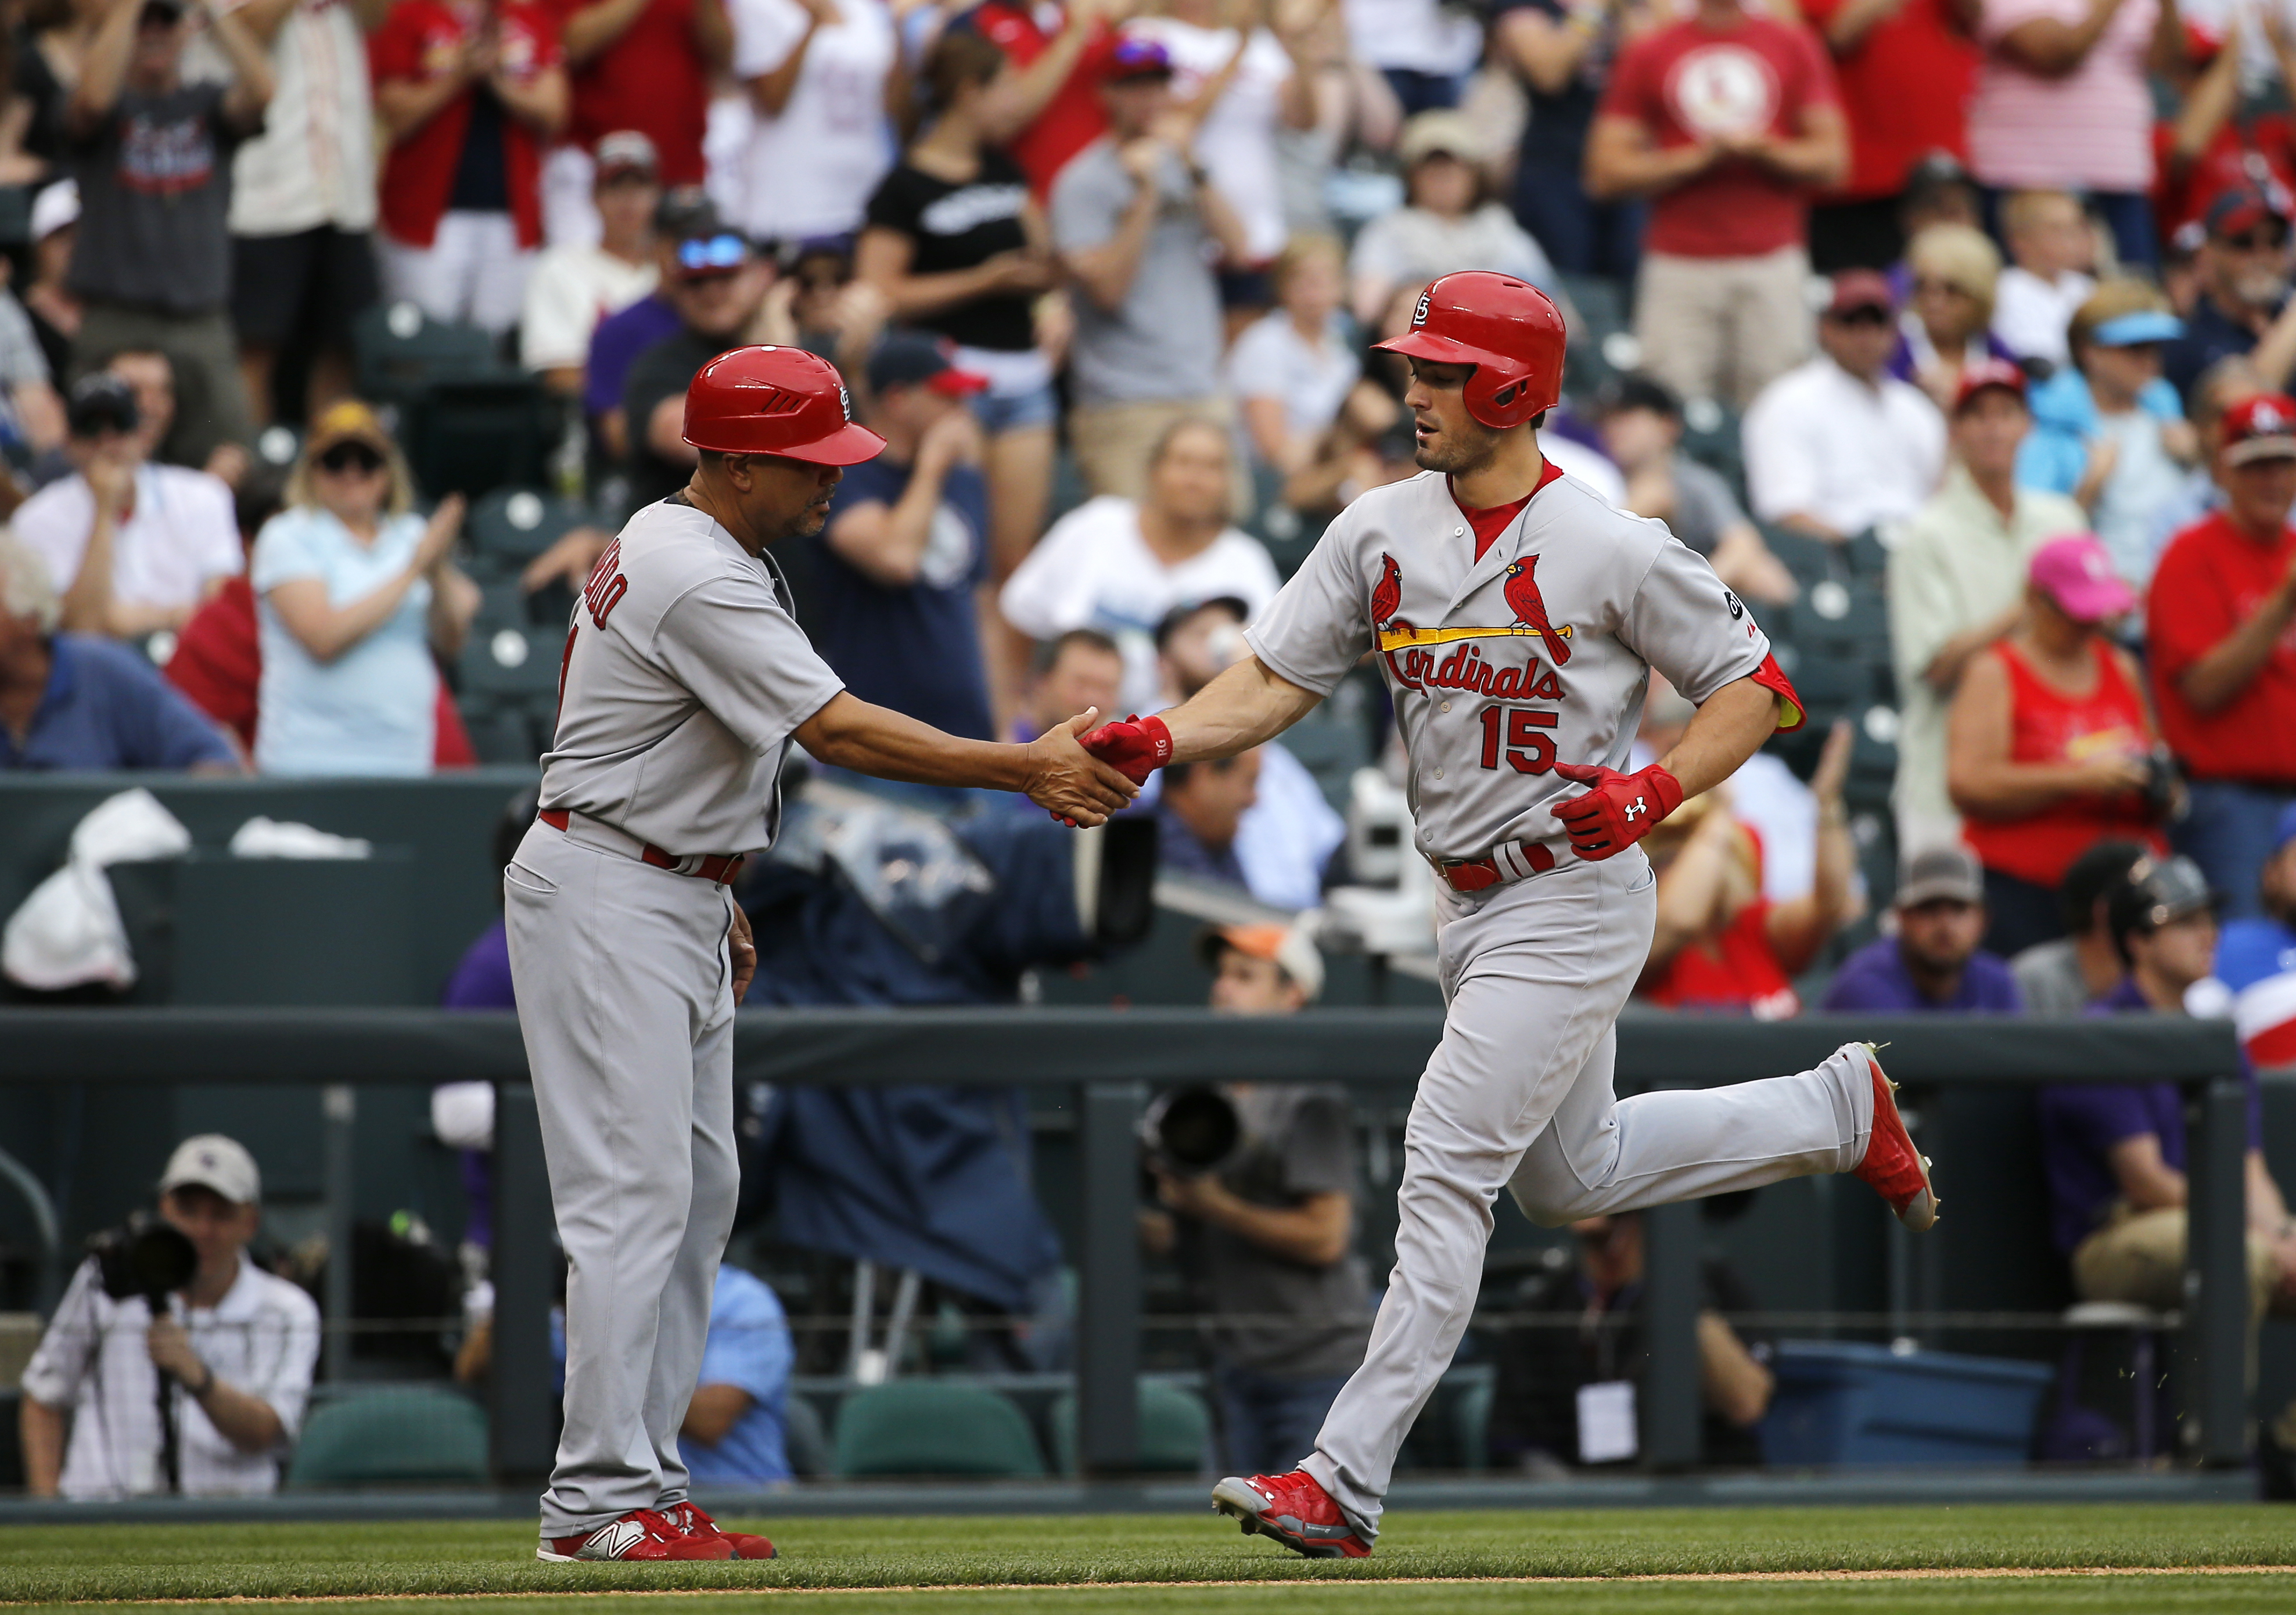 St. Louis Cardinals' Randal Grichuk (15) is congratulated by Jose Oquendo (11) after hitting a solo home run against the Colorado Rockies during the eighth inning of a baseball game, Wednesday, June 10, 2015, in Denver. (AP Photo/Jack Dempsey)